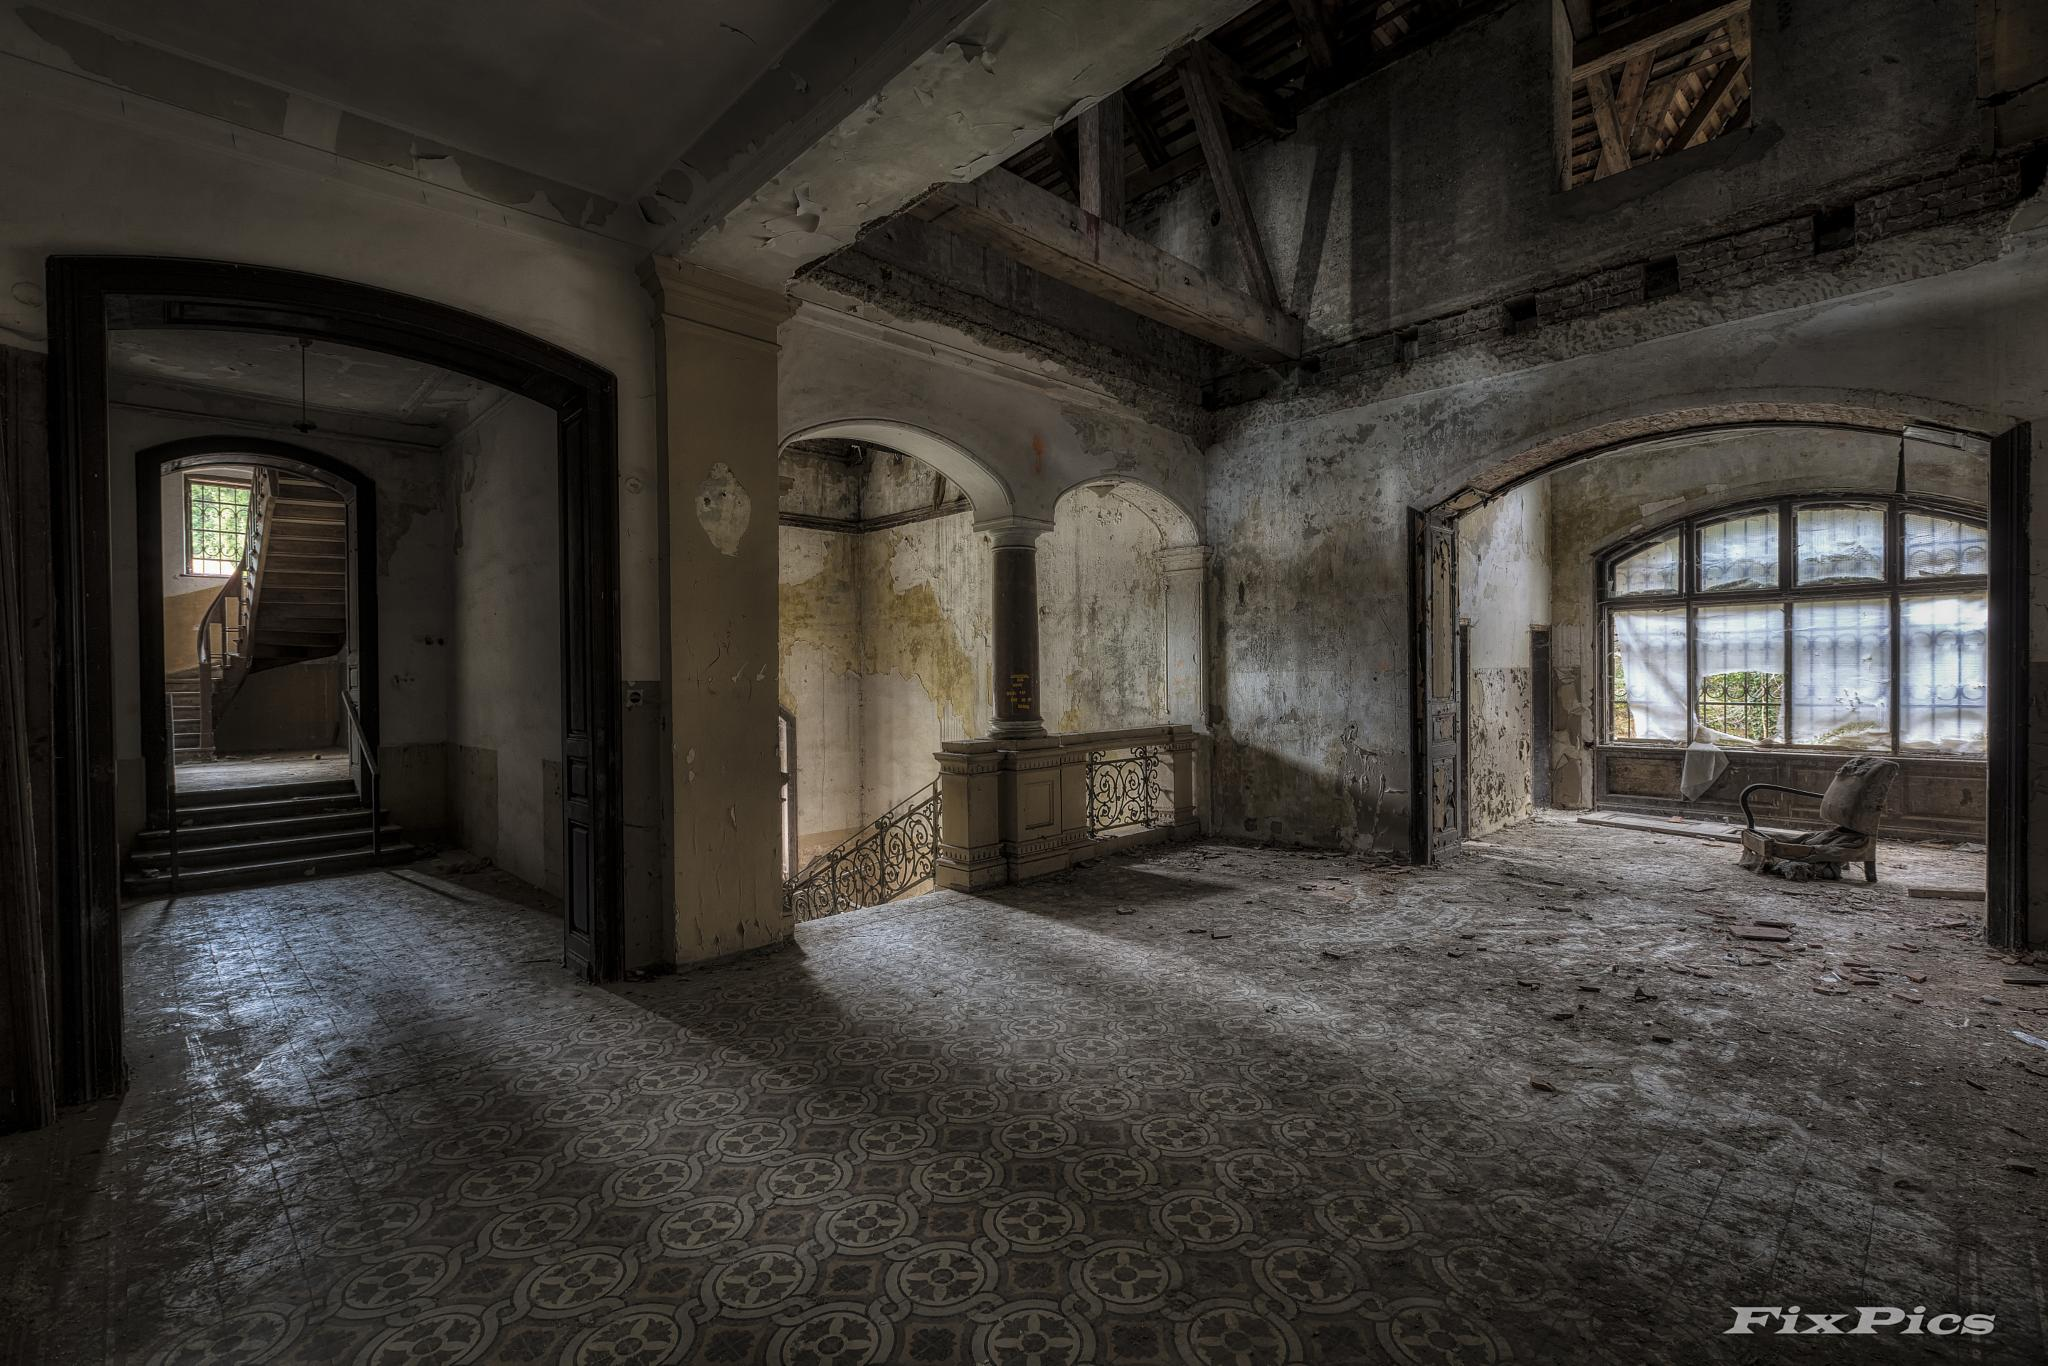 on the second floor by Martin Kriebernegg